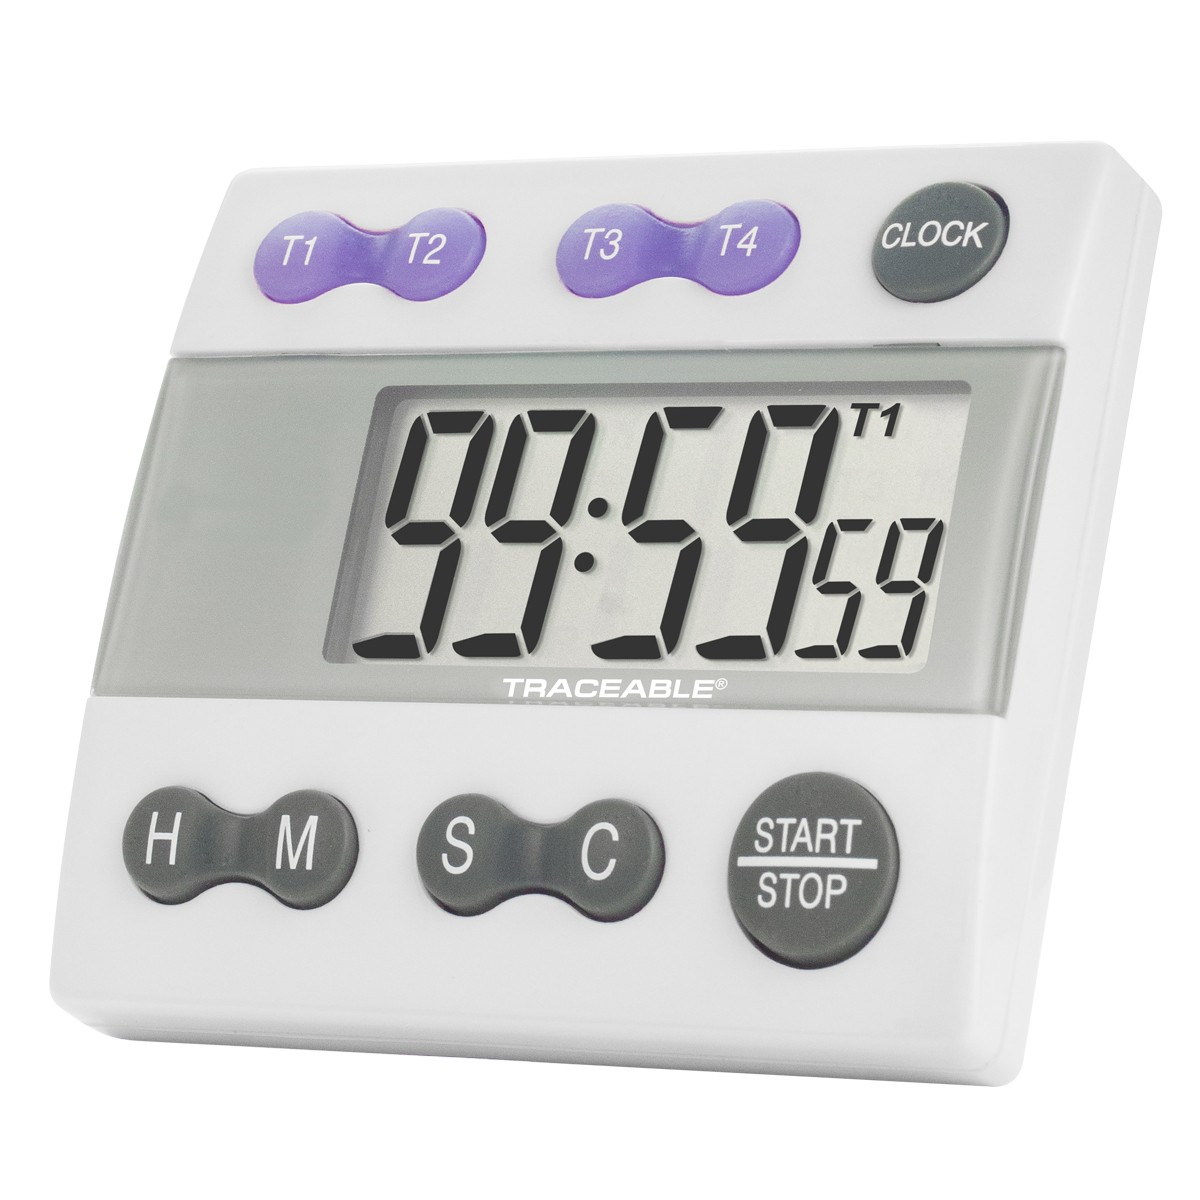 Alarm Timer Four Channel Traceable Alarm Timer